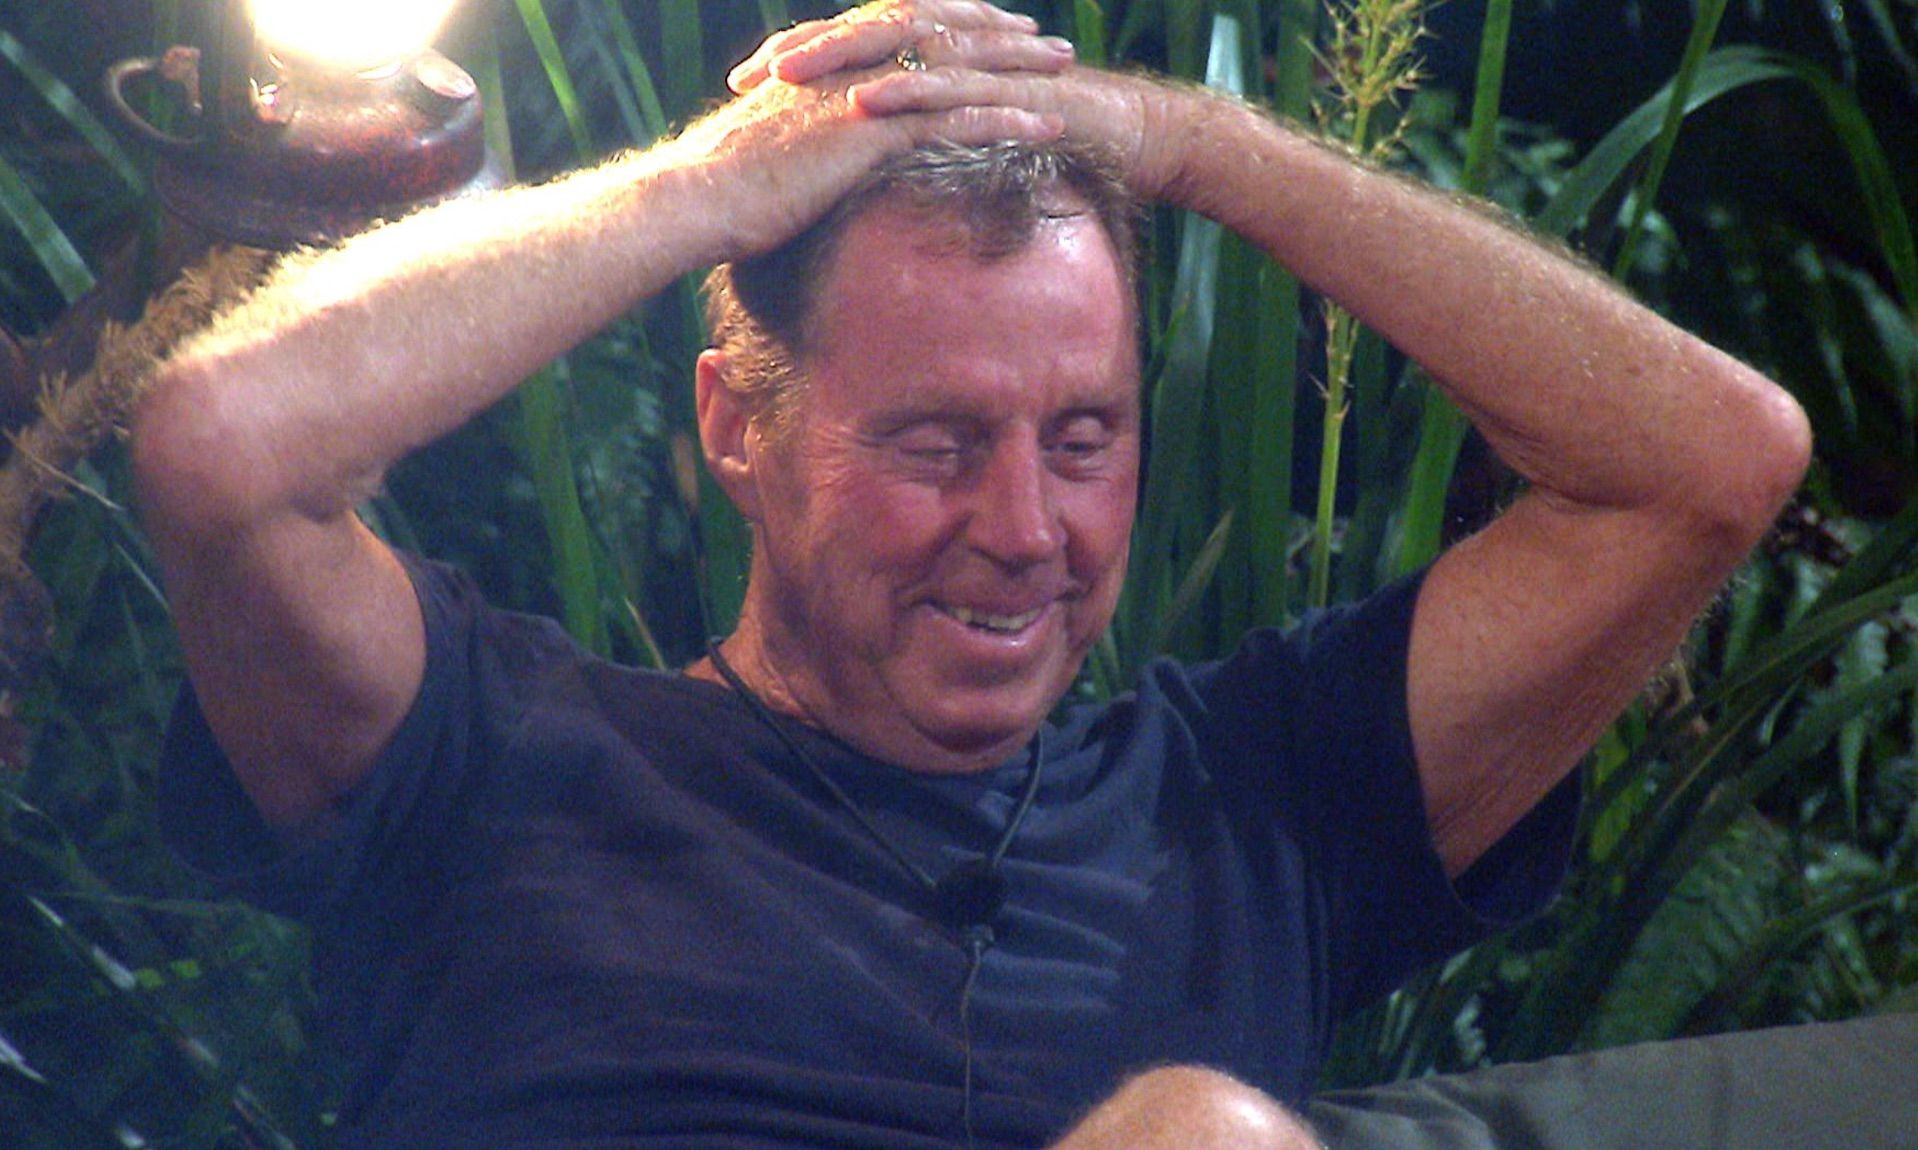 I'm a Celebrity... Get Me Out of Here! is making a big change to its Bushtucker Trials